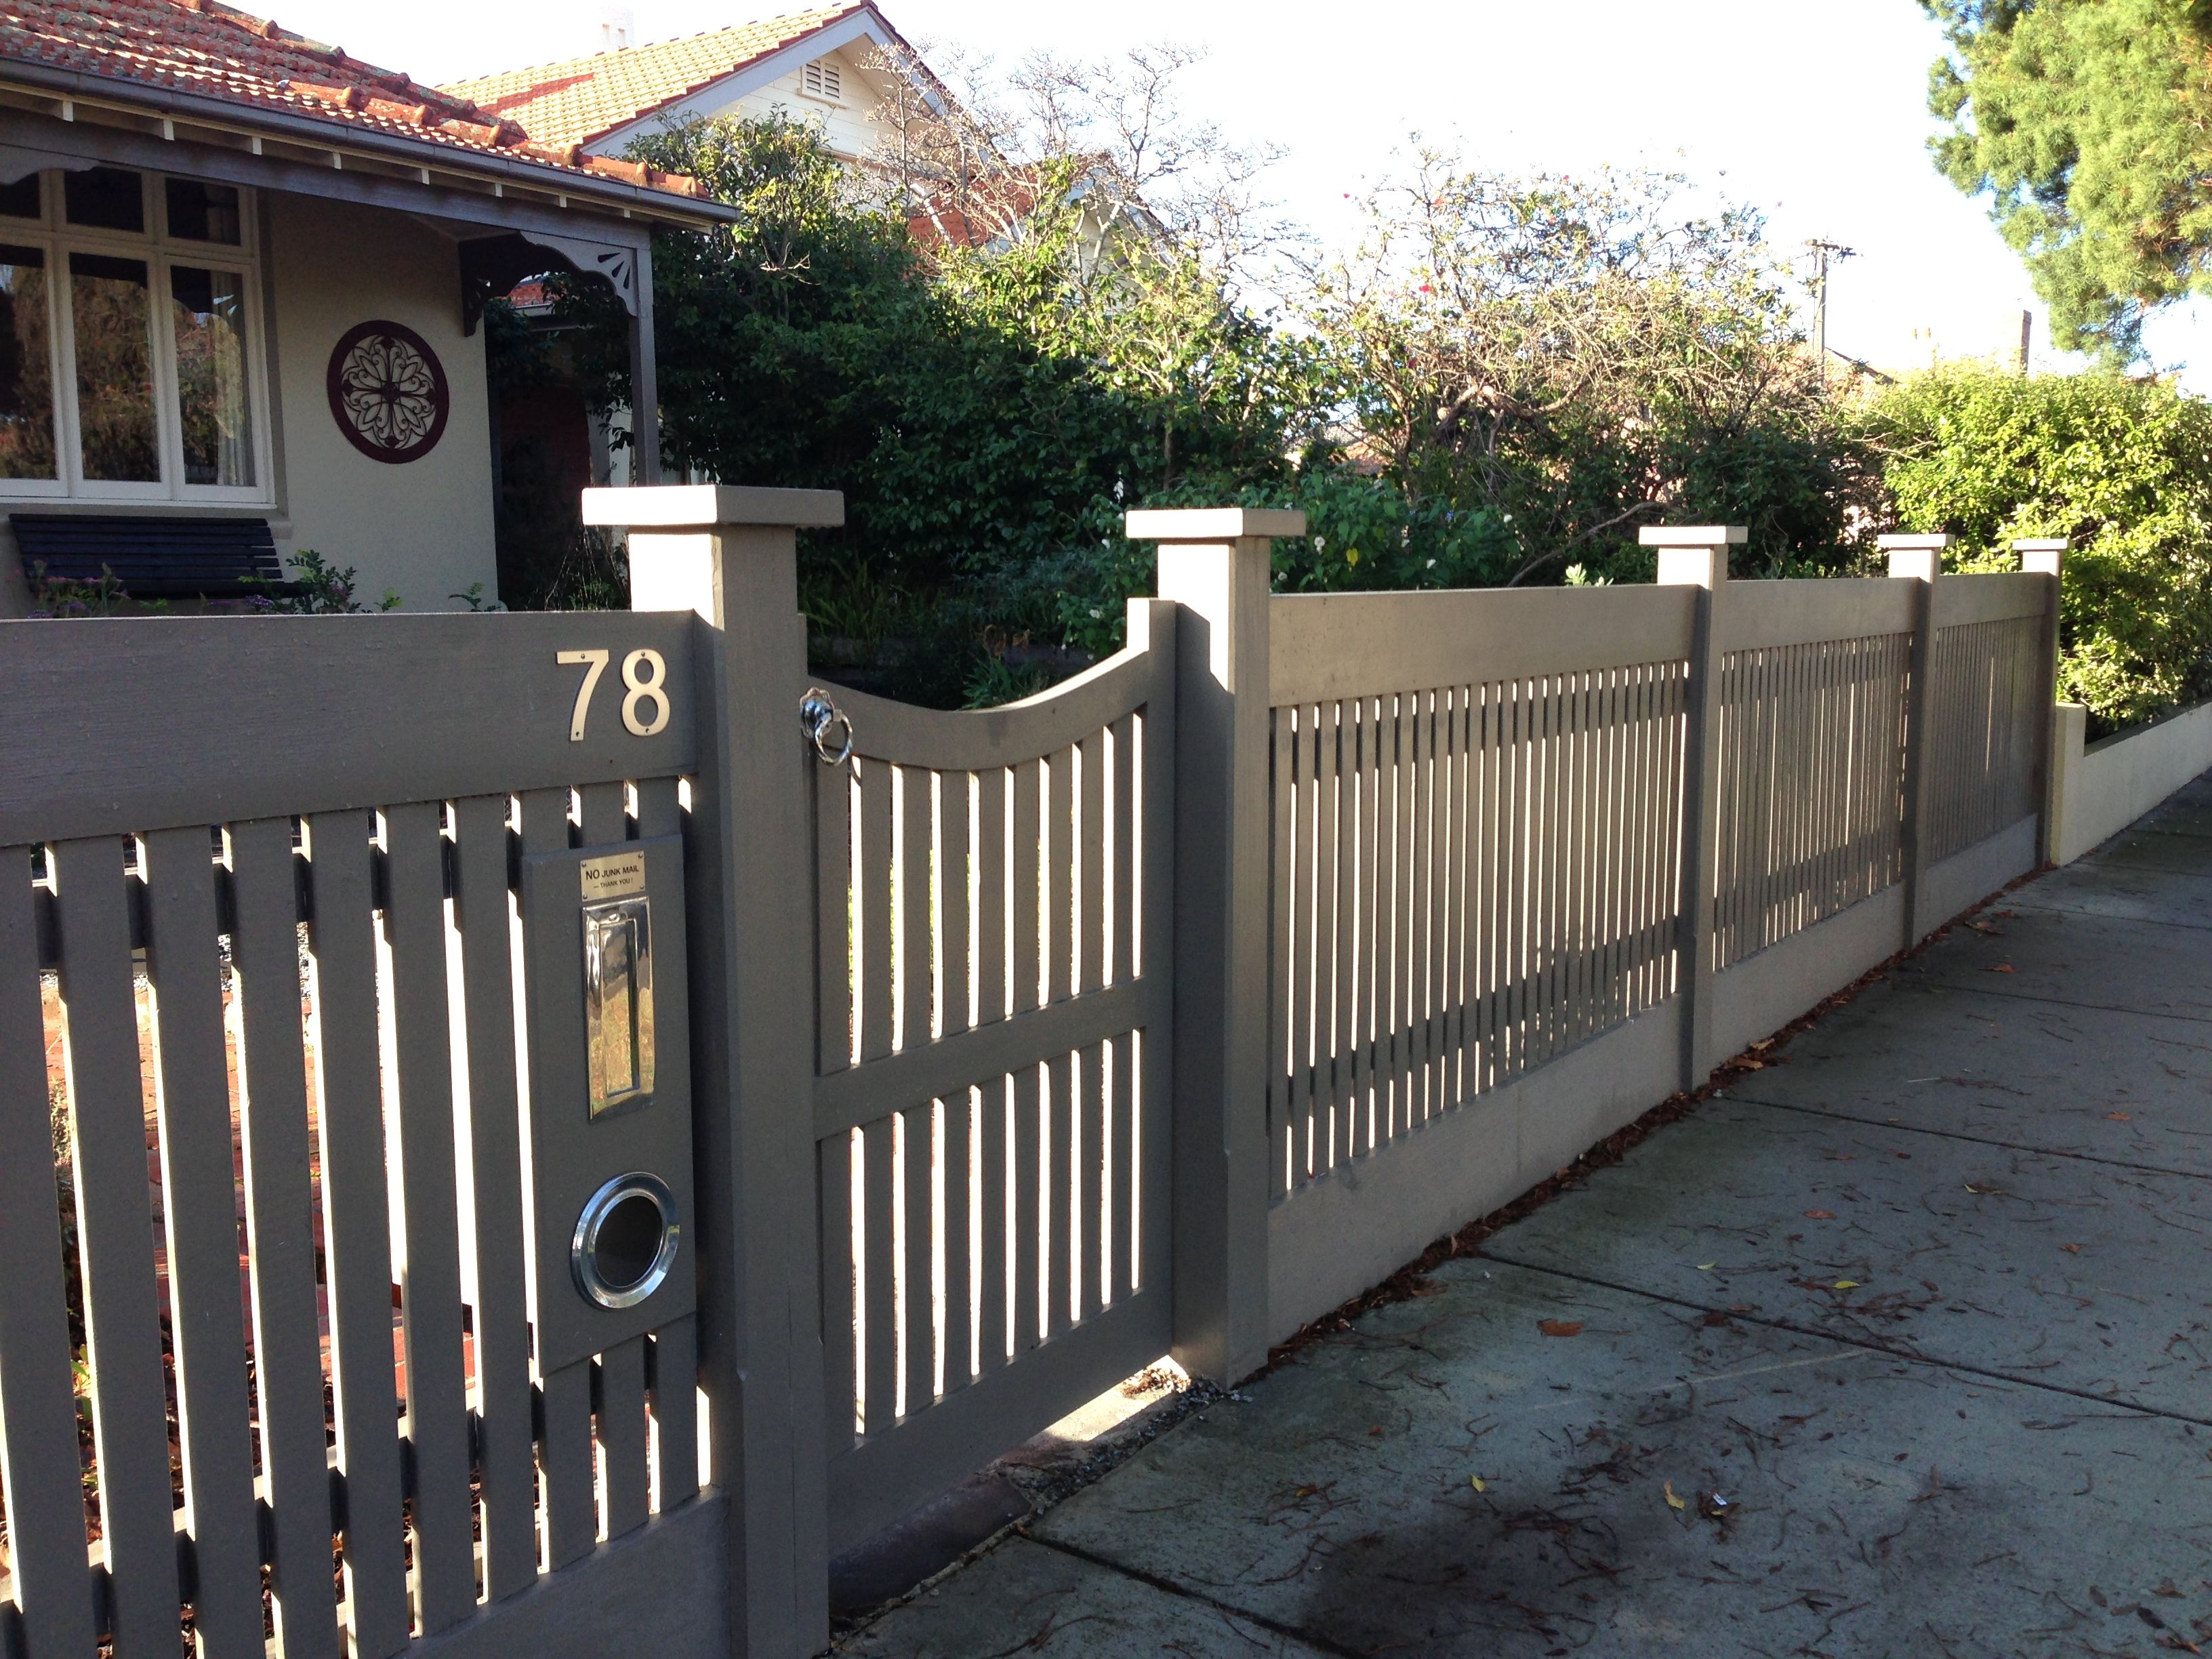 Heavy Colonial Or Heritage Style Fence With A Bulky And Sturdy